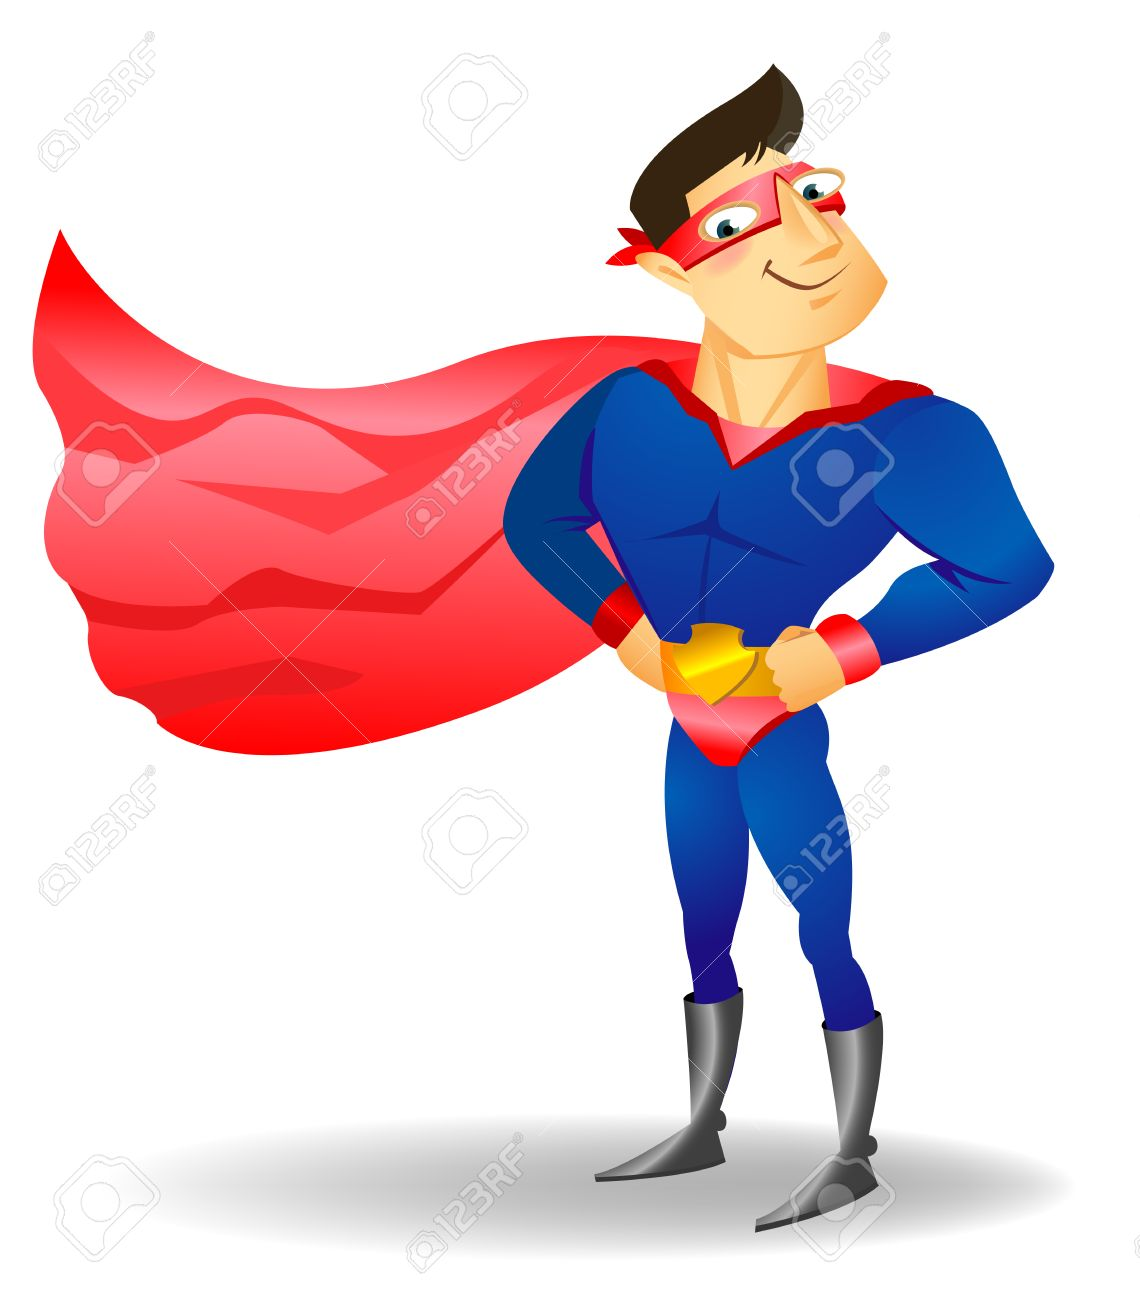 super hero vector illustration on a background royalty free cliparts rh 123rf com super hero vector superhero vector free